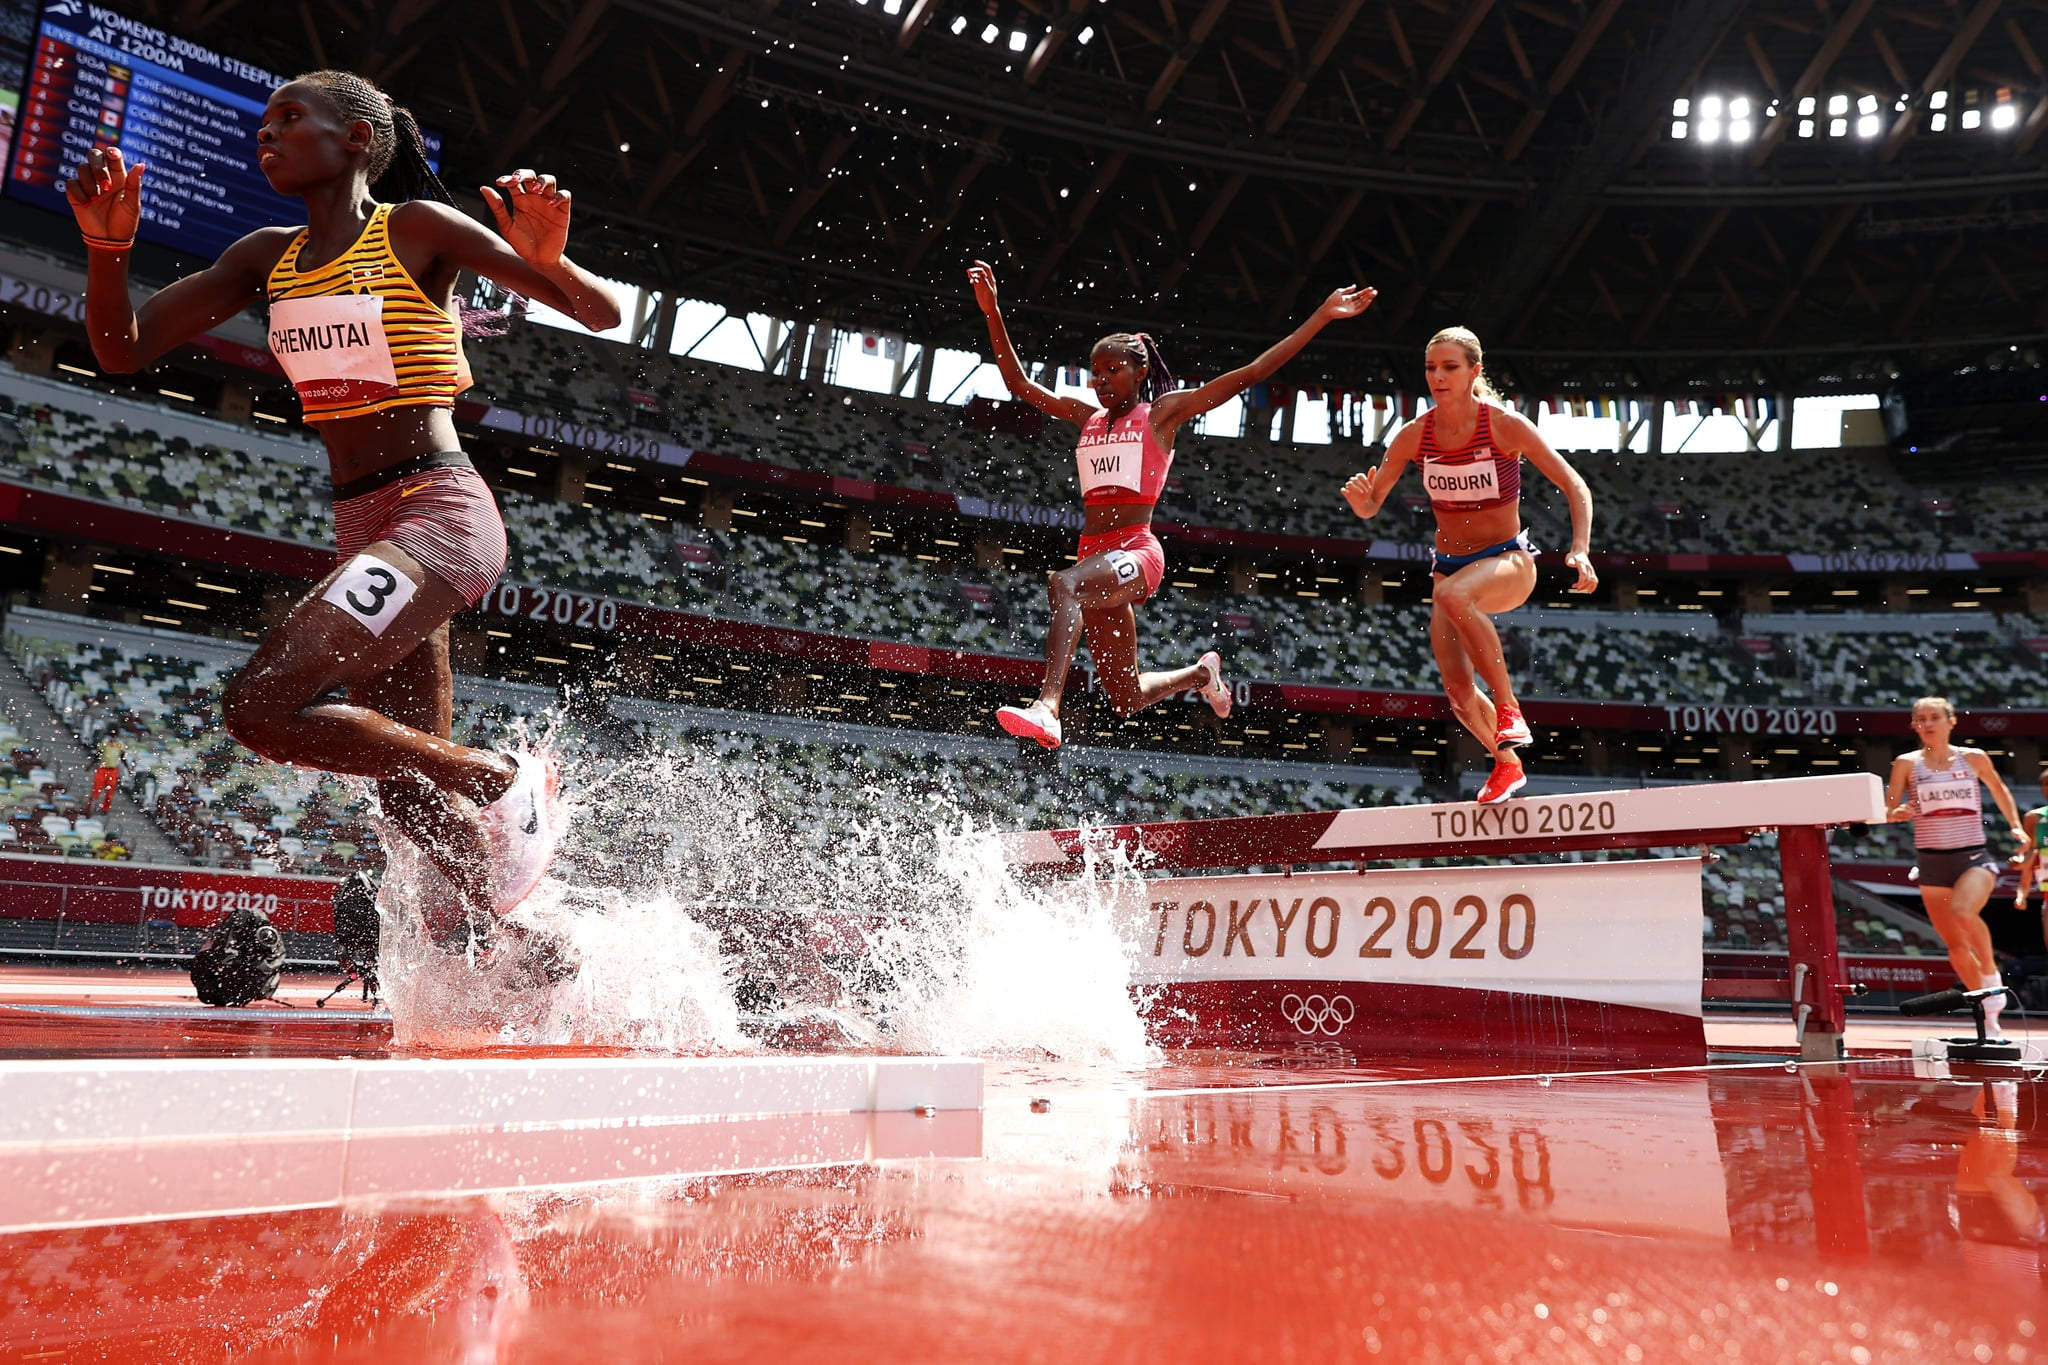 TOKYO, JAPAN - AUGUST 01:  Peruth Chemutai of Team Uganda, Winfred Mutile Yavi of Team Bahrain and Emma Coburn of Team United States compete in round one of the Women's 3000m Steeplechase heats on day nine of the Tokyo 2020 Olympic Games at Olympic Stadium on August 01, 2021 in Tokyo, Japan. (Photo by Christian Petersen/Getty Images)